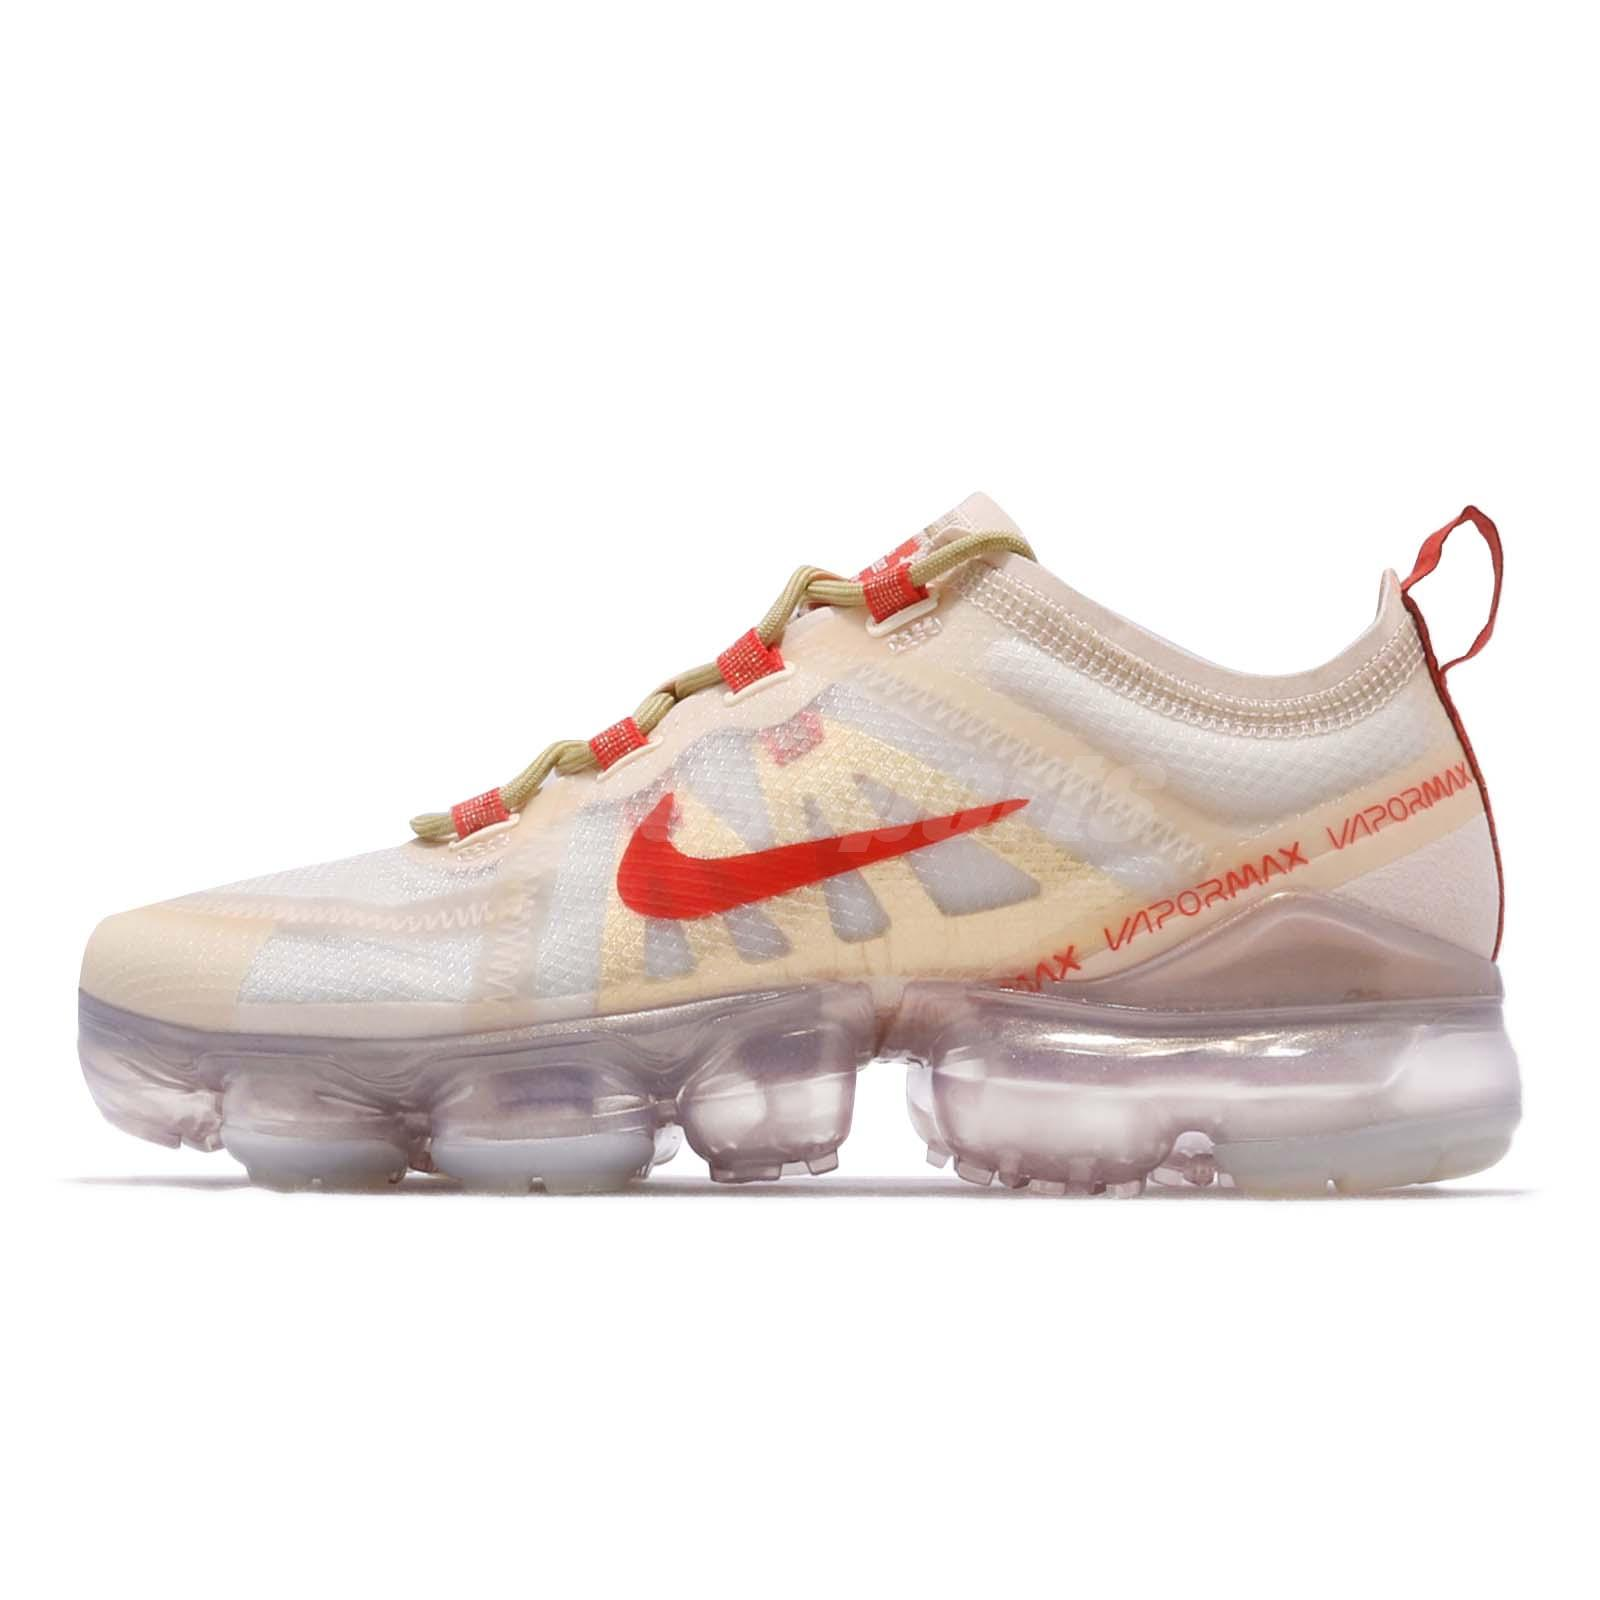 8e498111156 Nike Wmns Air Vapormax 2019 CNY Chinese New Year Women Shoes Sneakers BQ7041 -200